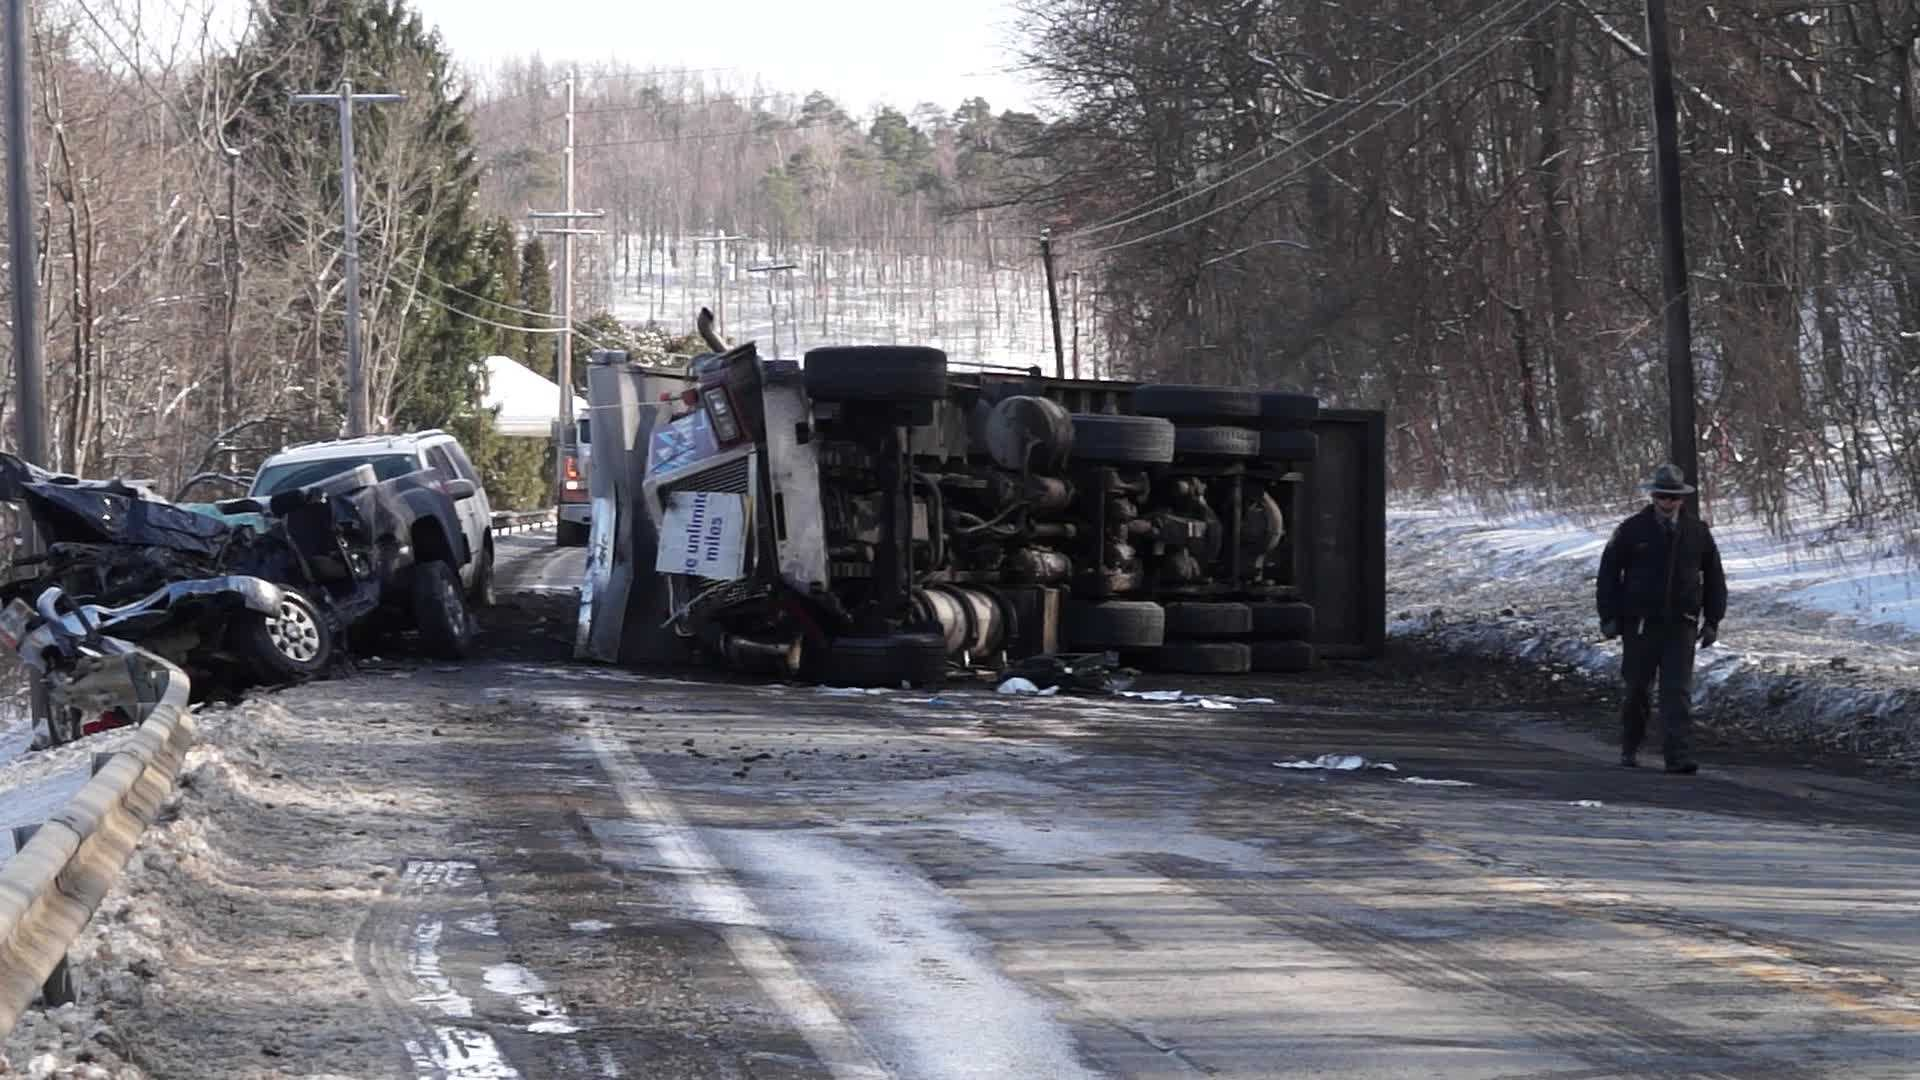 A coal truck was involved in a multi-vehicle accident that closed Route 422 in Kittanning Township Friday afternoon.